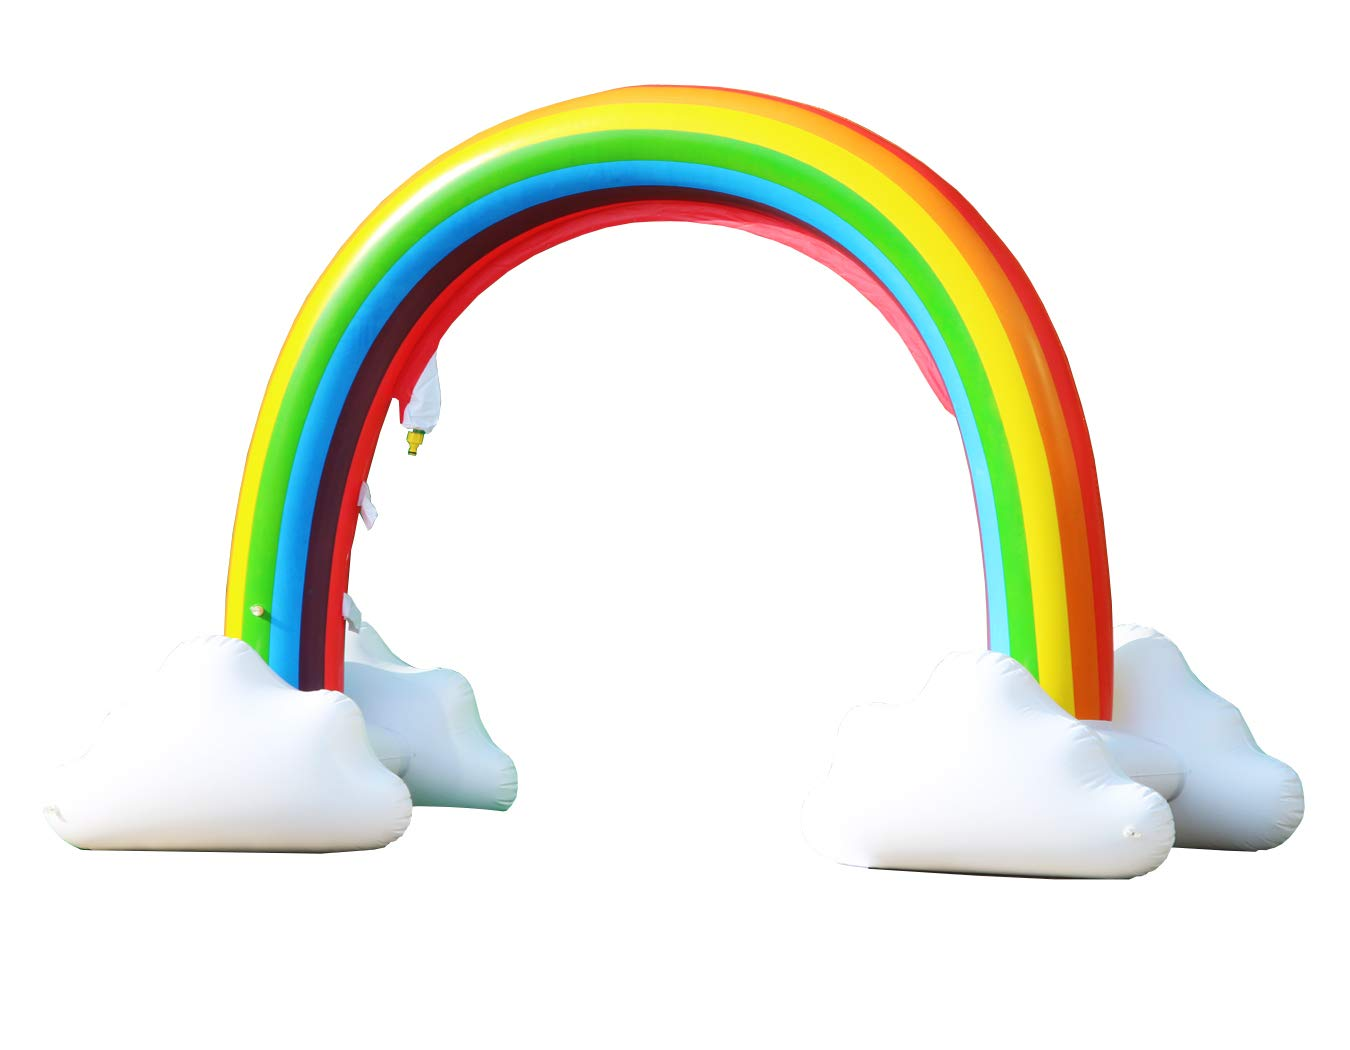 LANGXUN Giant Inflatable Rainbow Sprinkler Arch, Outdoor Summer Water Toys for Kids 4